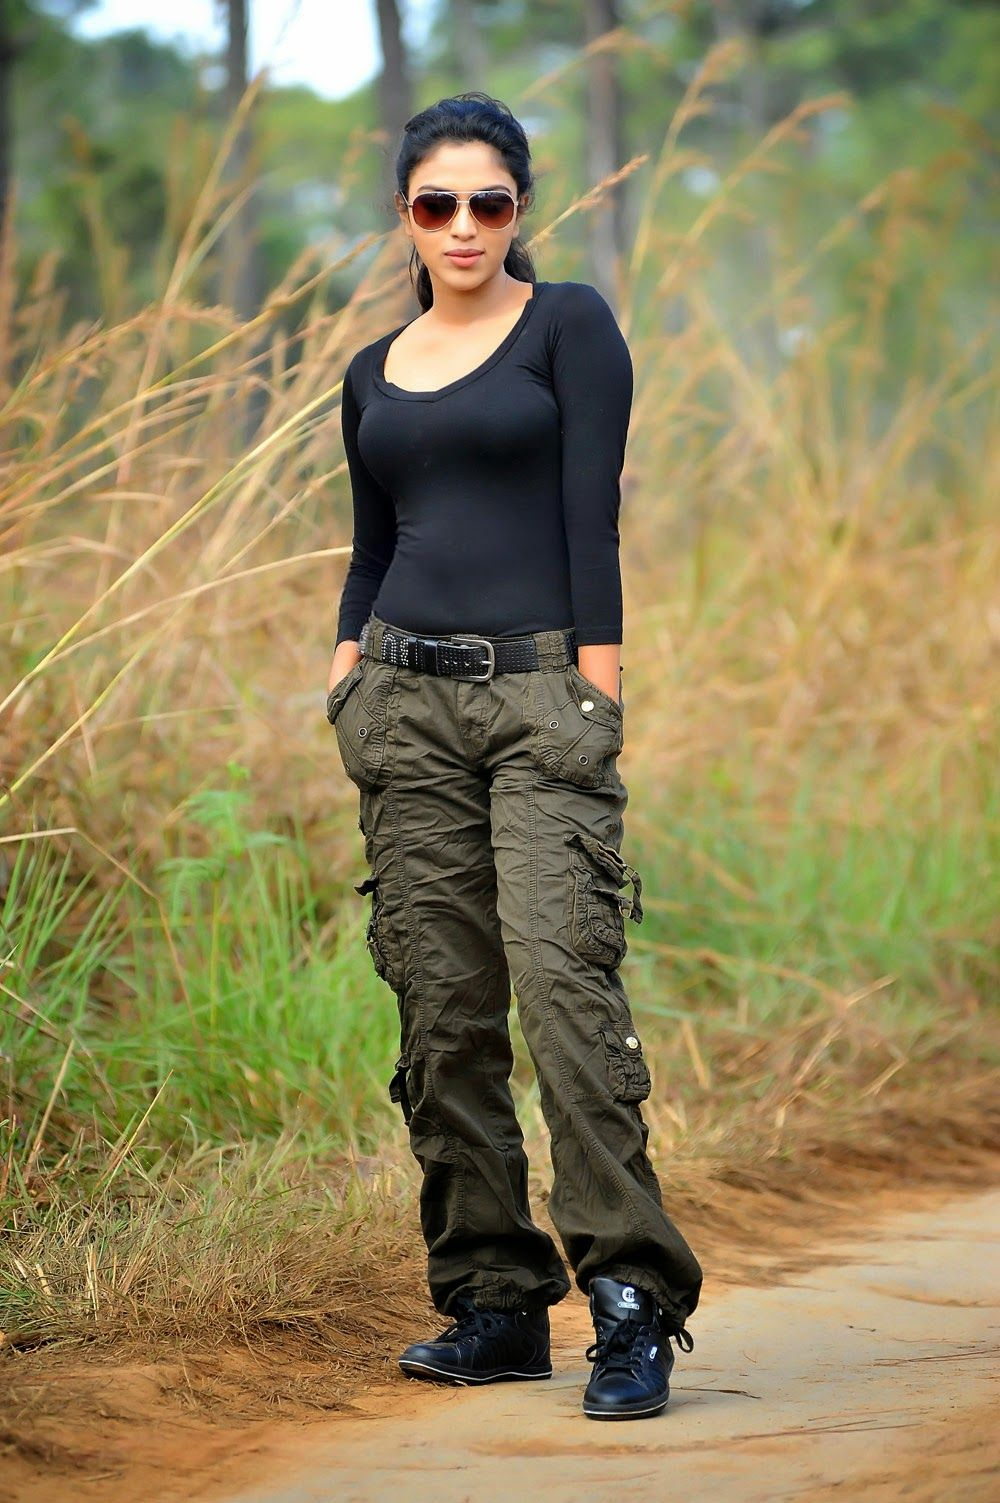 These actresses look very hot in black jeans, they become uncontrollable seeing pictures